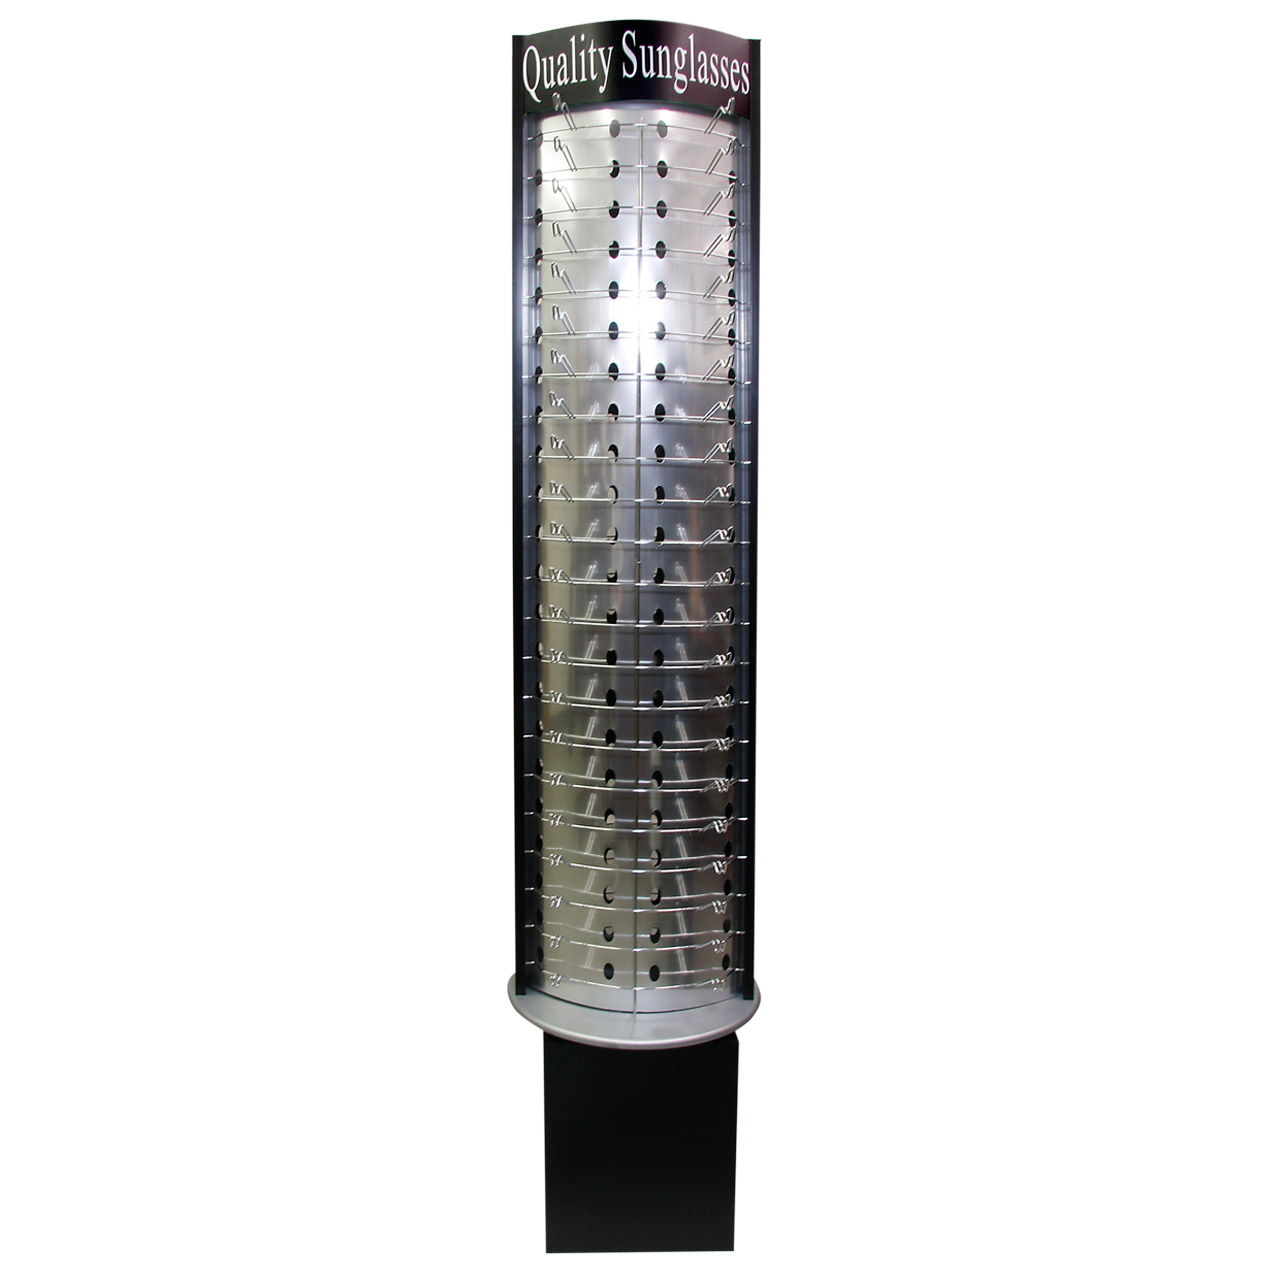 Rotating Sunglass Display 7069 (1 pc.) Holds 88 Pair